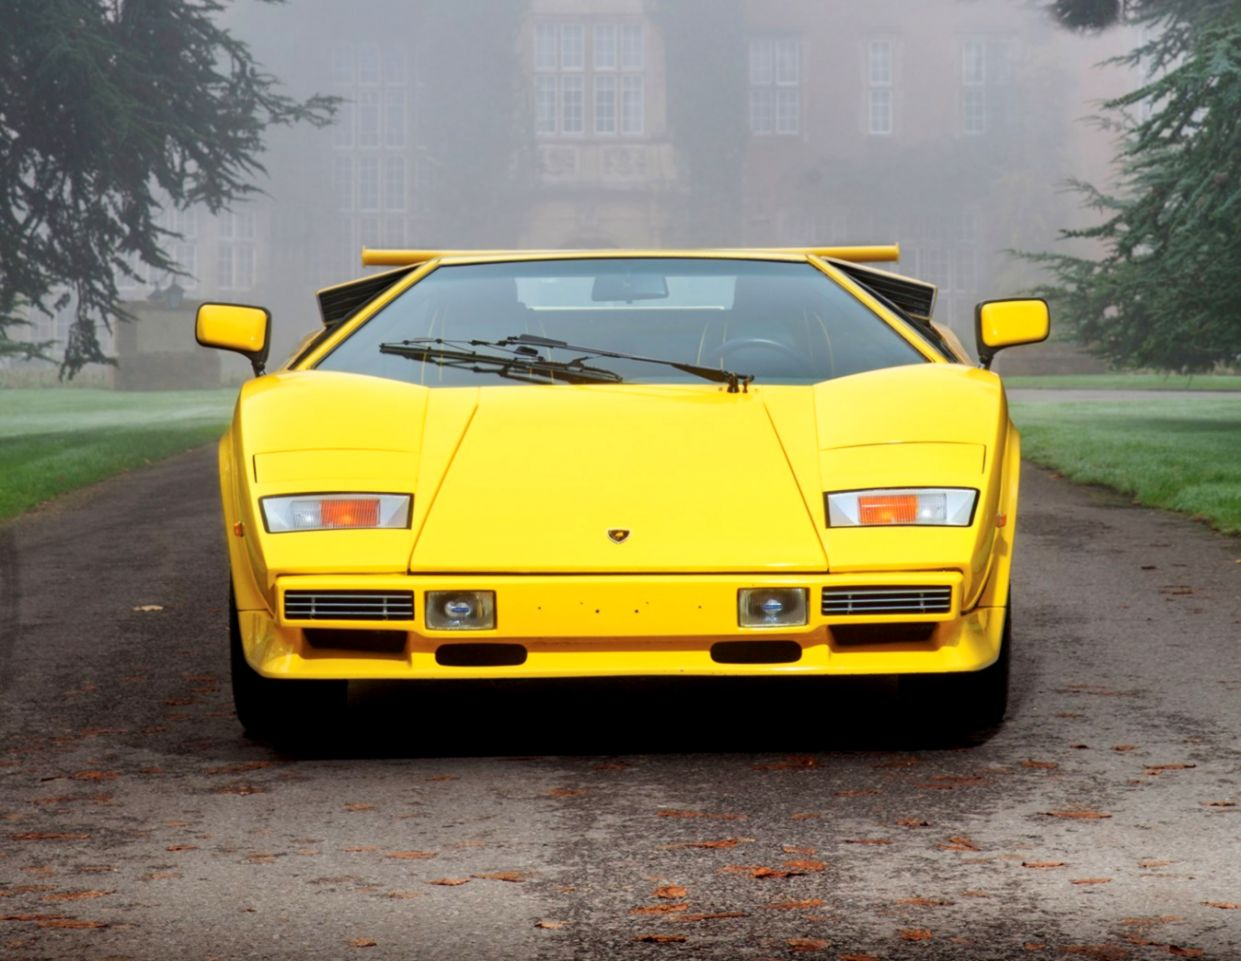 Lamborghini Countach Classic Car Photo Hd Wallpaper Mobile Wallpapers